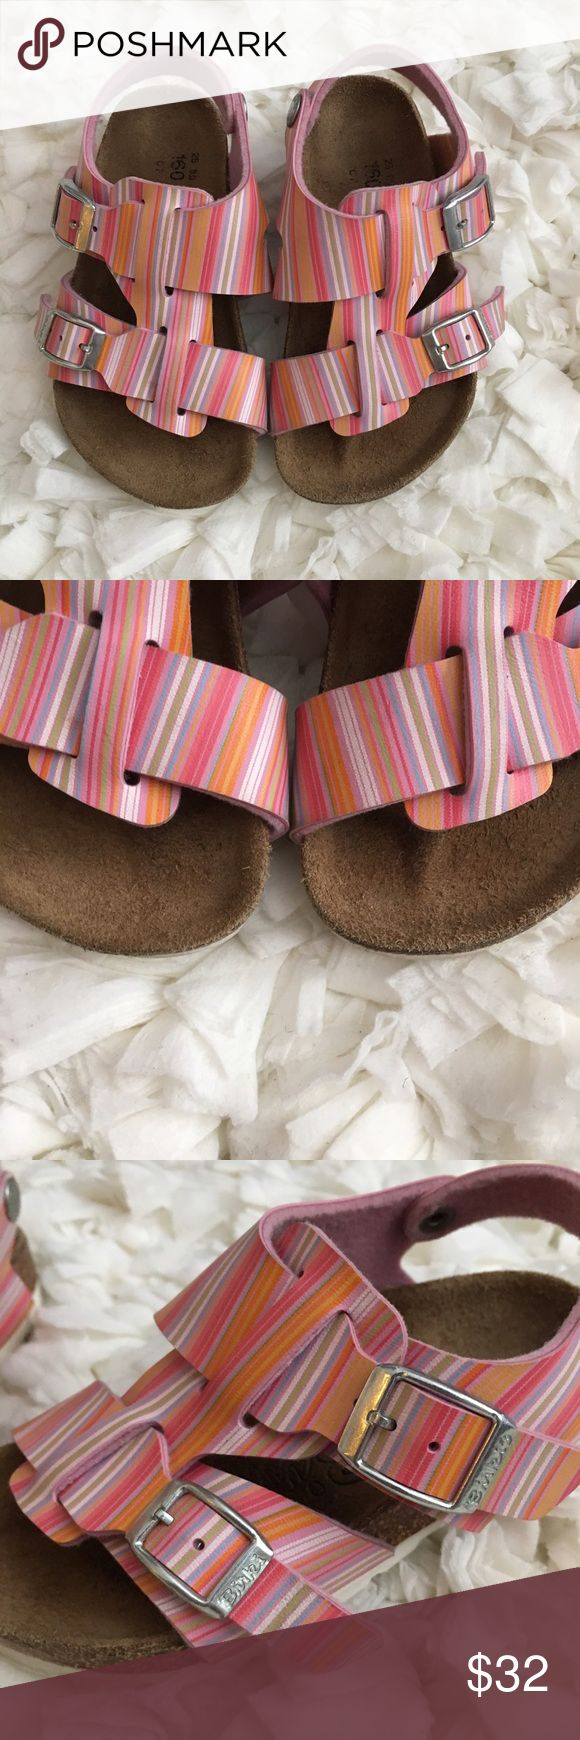 Birki's Birkenstock Toddler Girls Striped Sandals Excellent used condition! Shows normal wear on bottom of shoes Birkenstock size 25 or girls 7-7.5! Smoke and pet free home. No trades. Birkenstock Shoes Sandals & Flip Flops